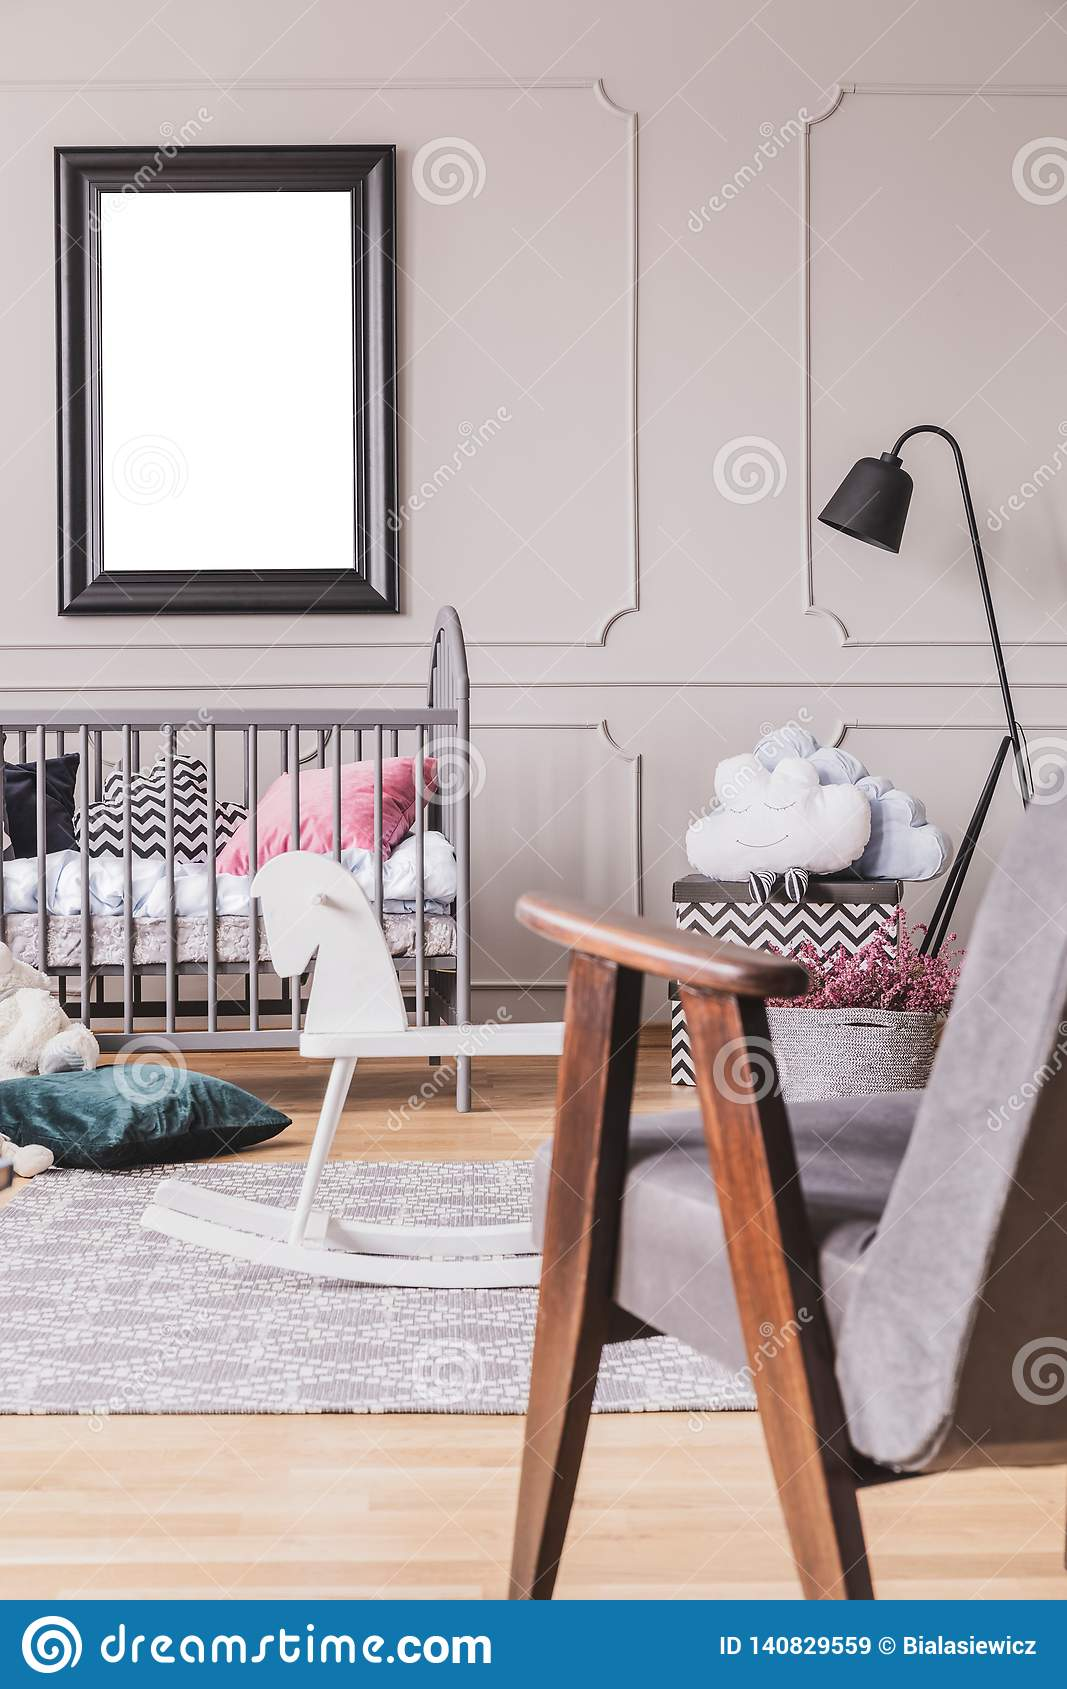 Vertical view of vintage grey armchair in trendy mid century baby room interior with mockup in black frame on the empty grey wall